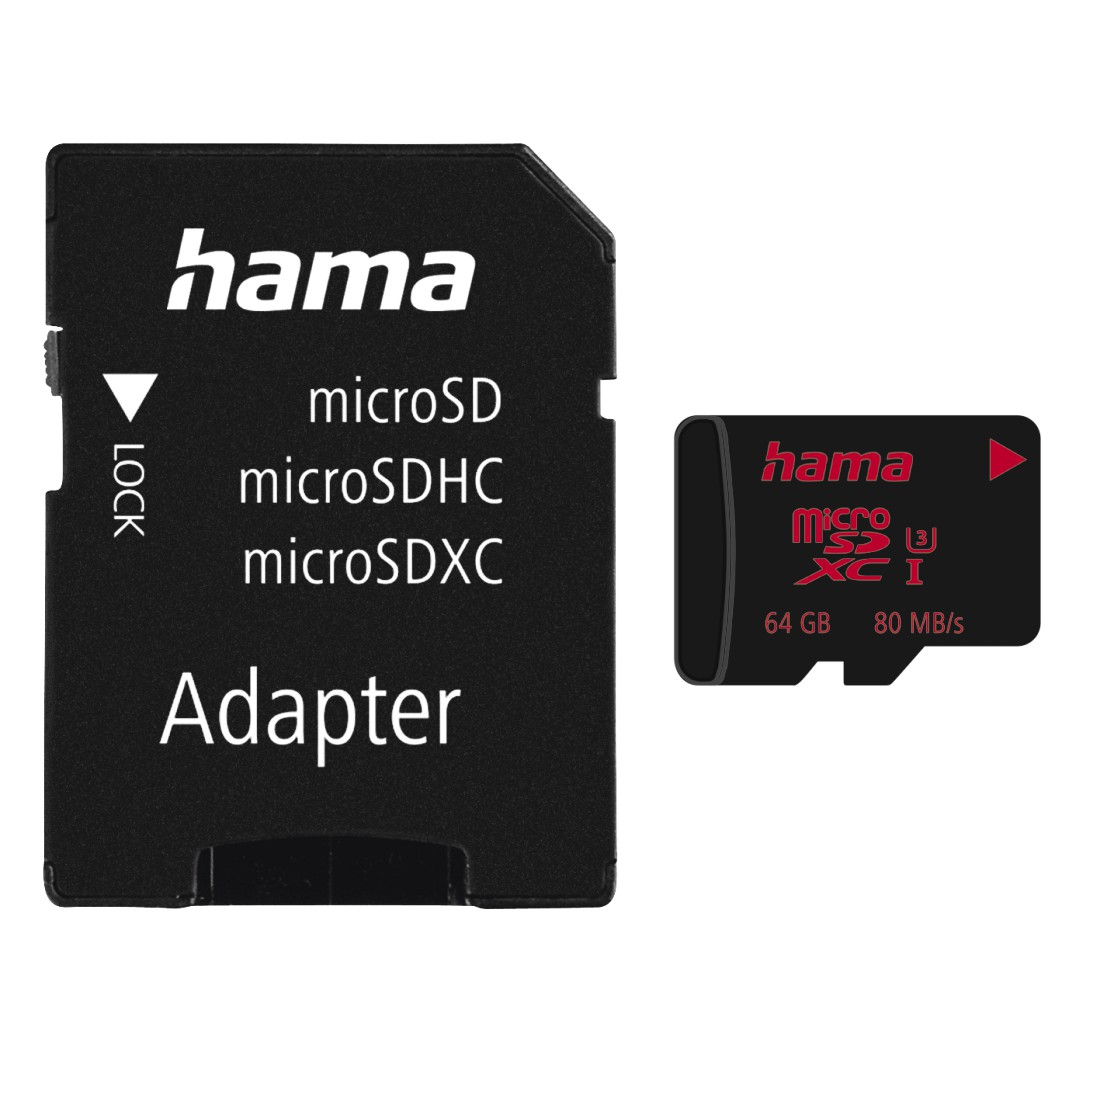 abx Druckfähige Abbildung - Hama, microSDXC 64GB UHS Speed Class 3 UHS-I 80MB/s + Adapter/Mobile